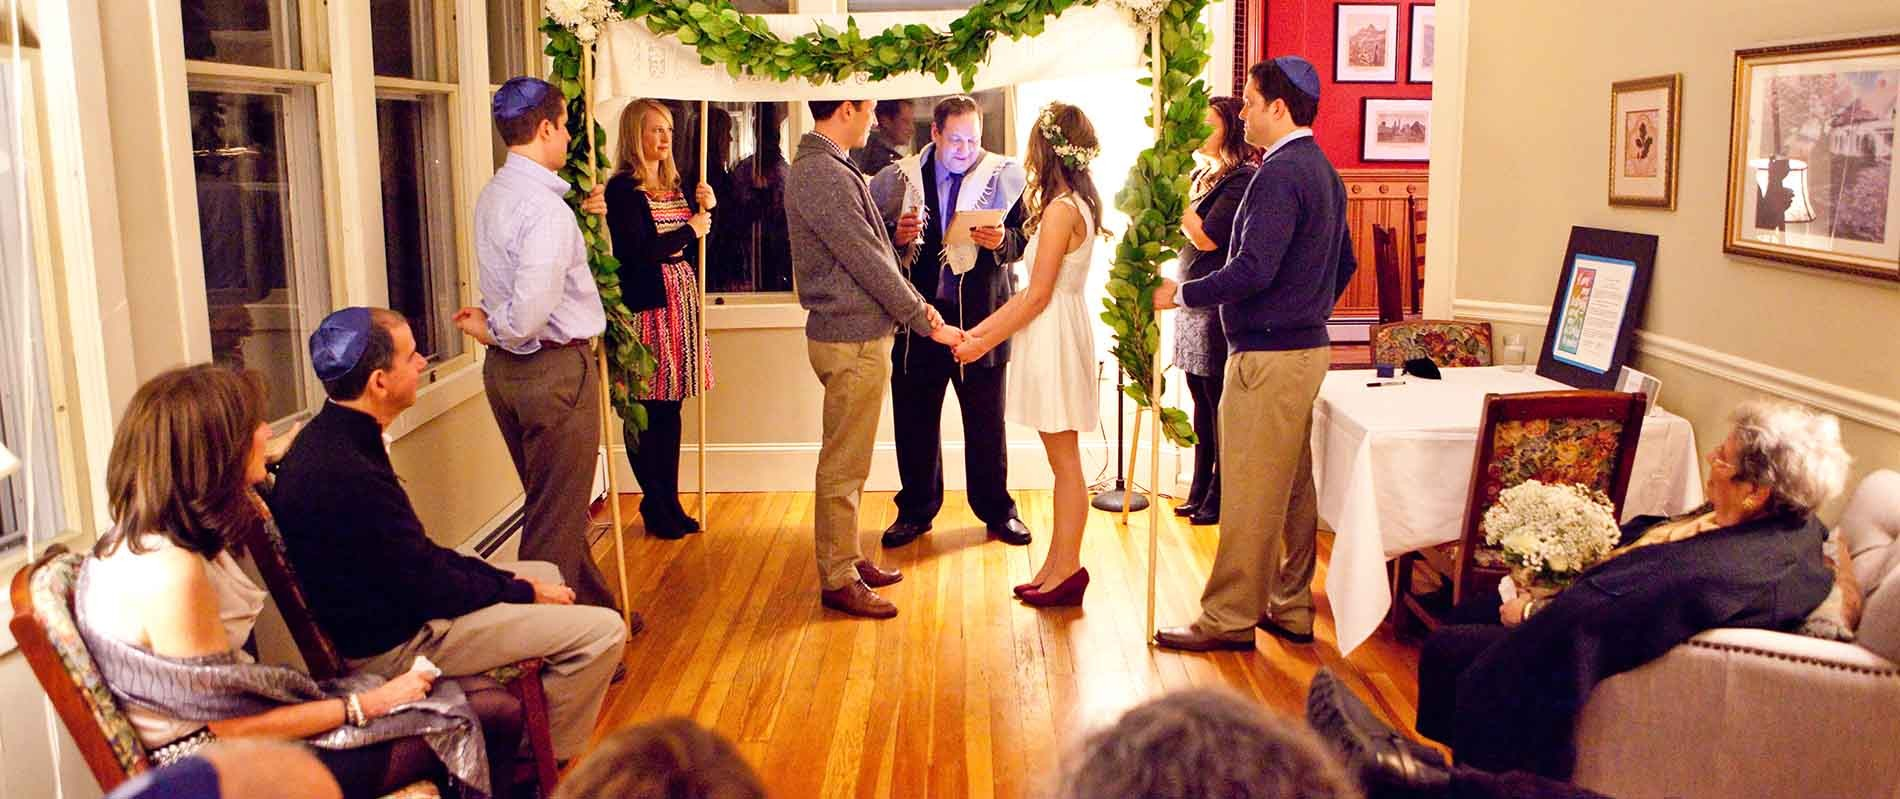 Burlington Vermont Wedding Venues Amp Elopements Small Amp Magical